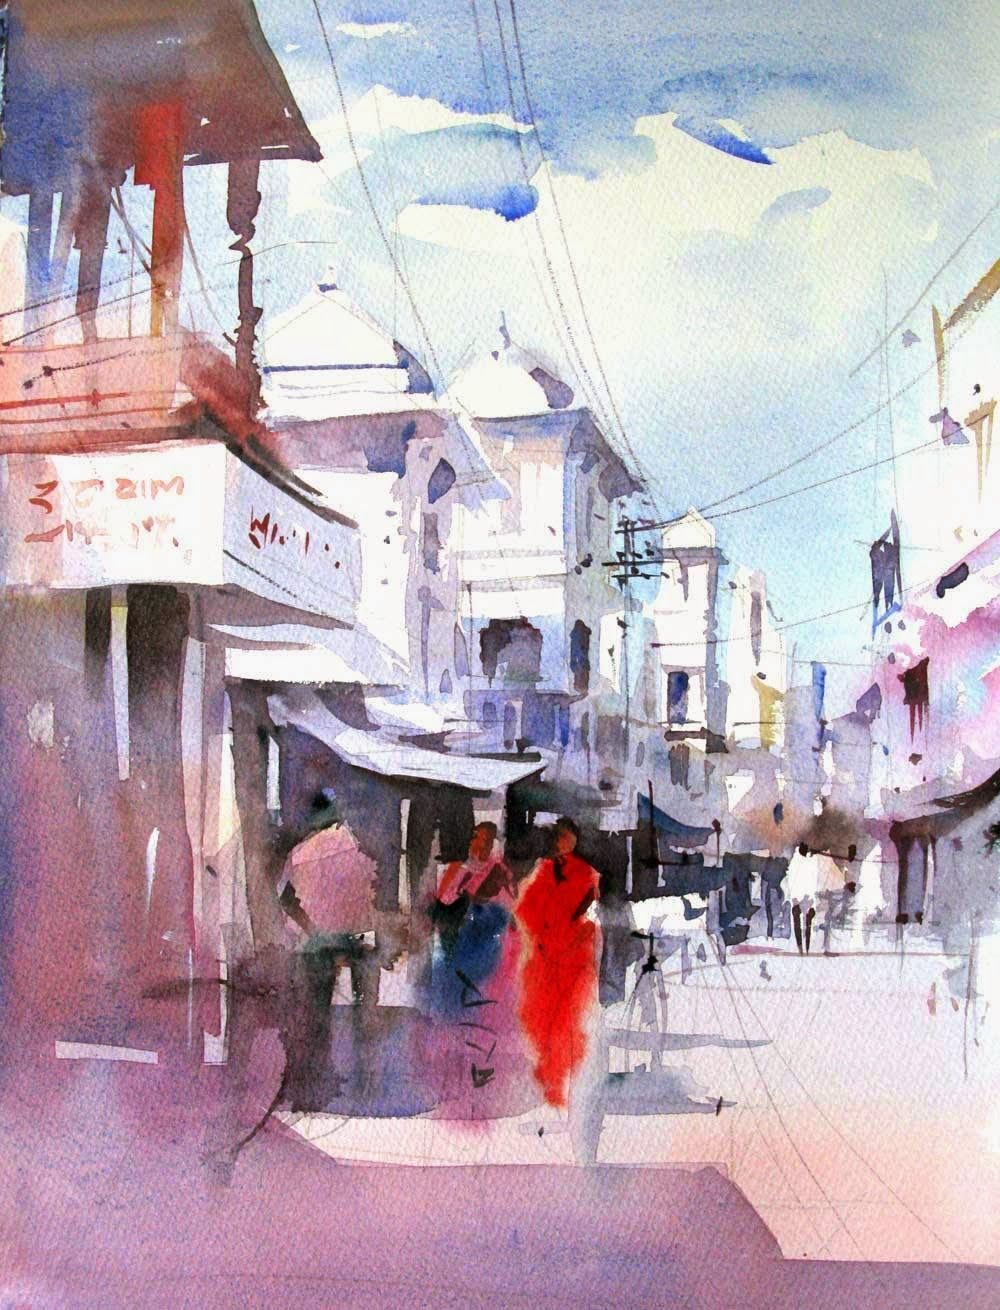 Watercolor artist websites - Find This Pin And More On Milind Mulick And Others Some Watercolor Beauty